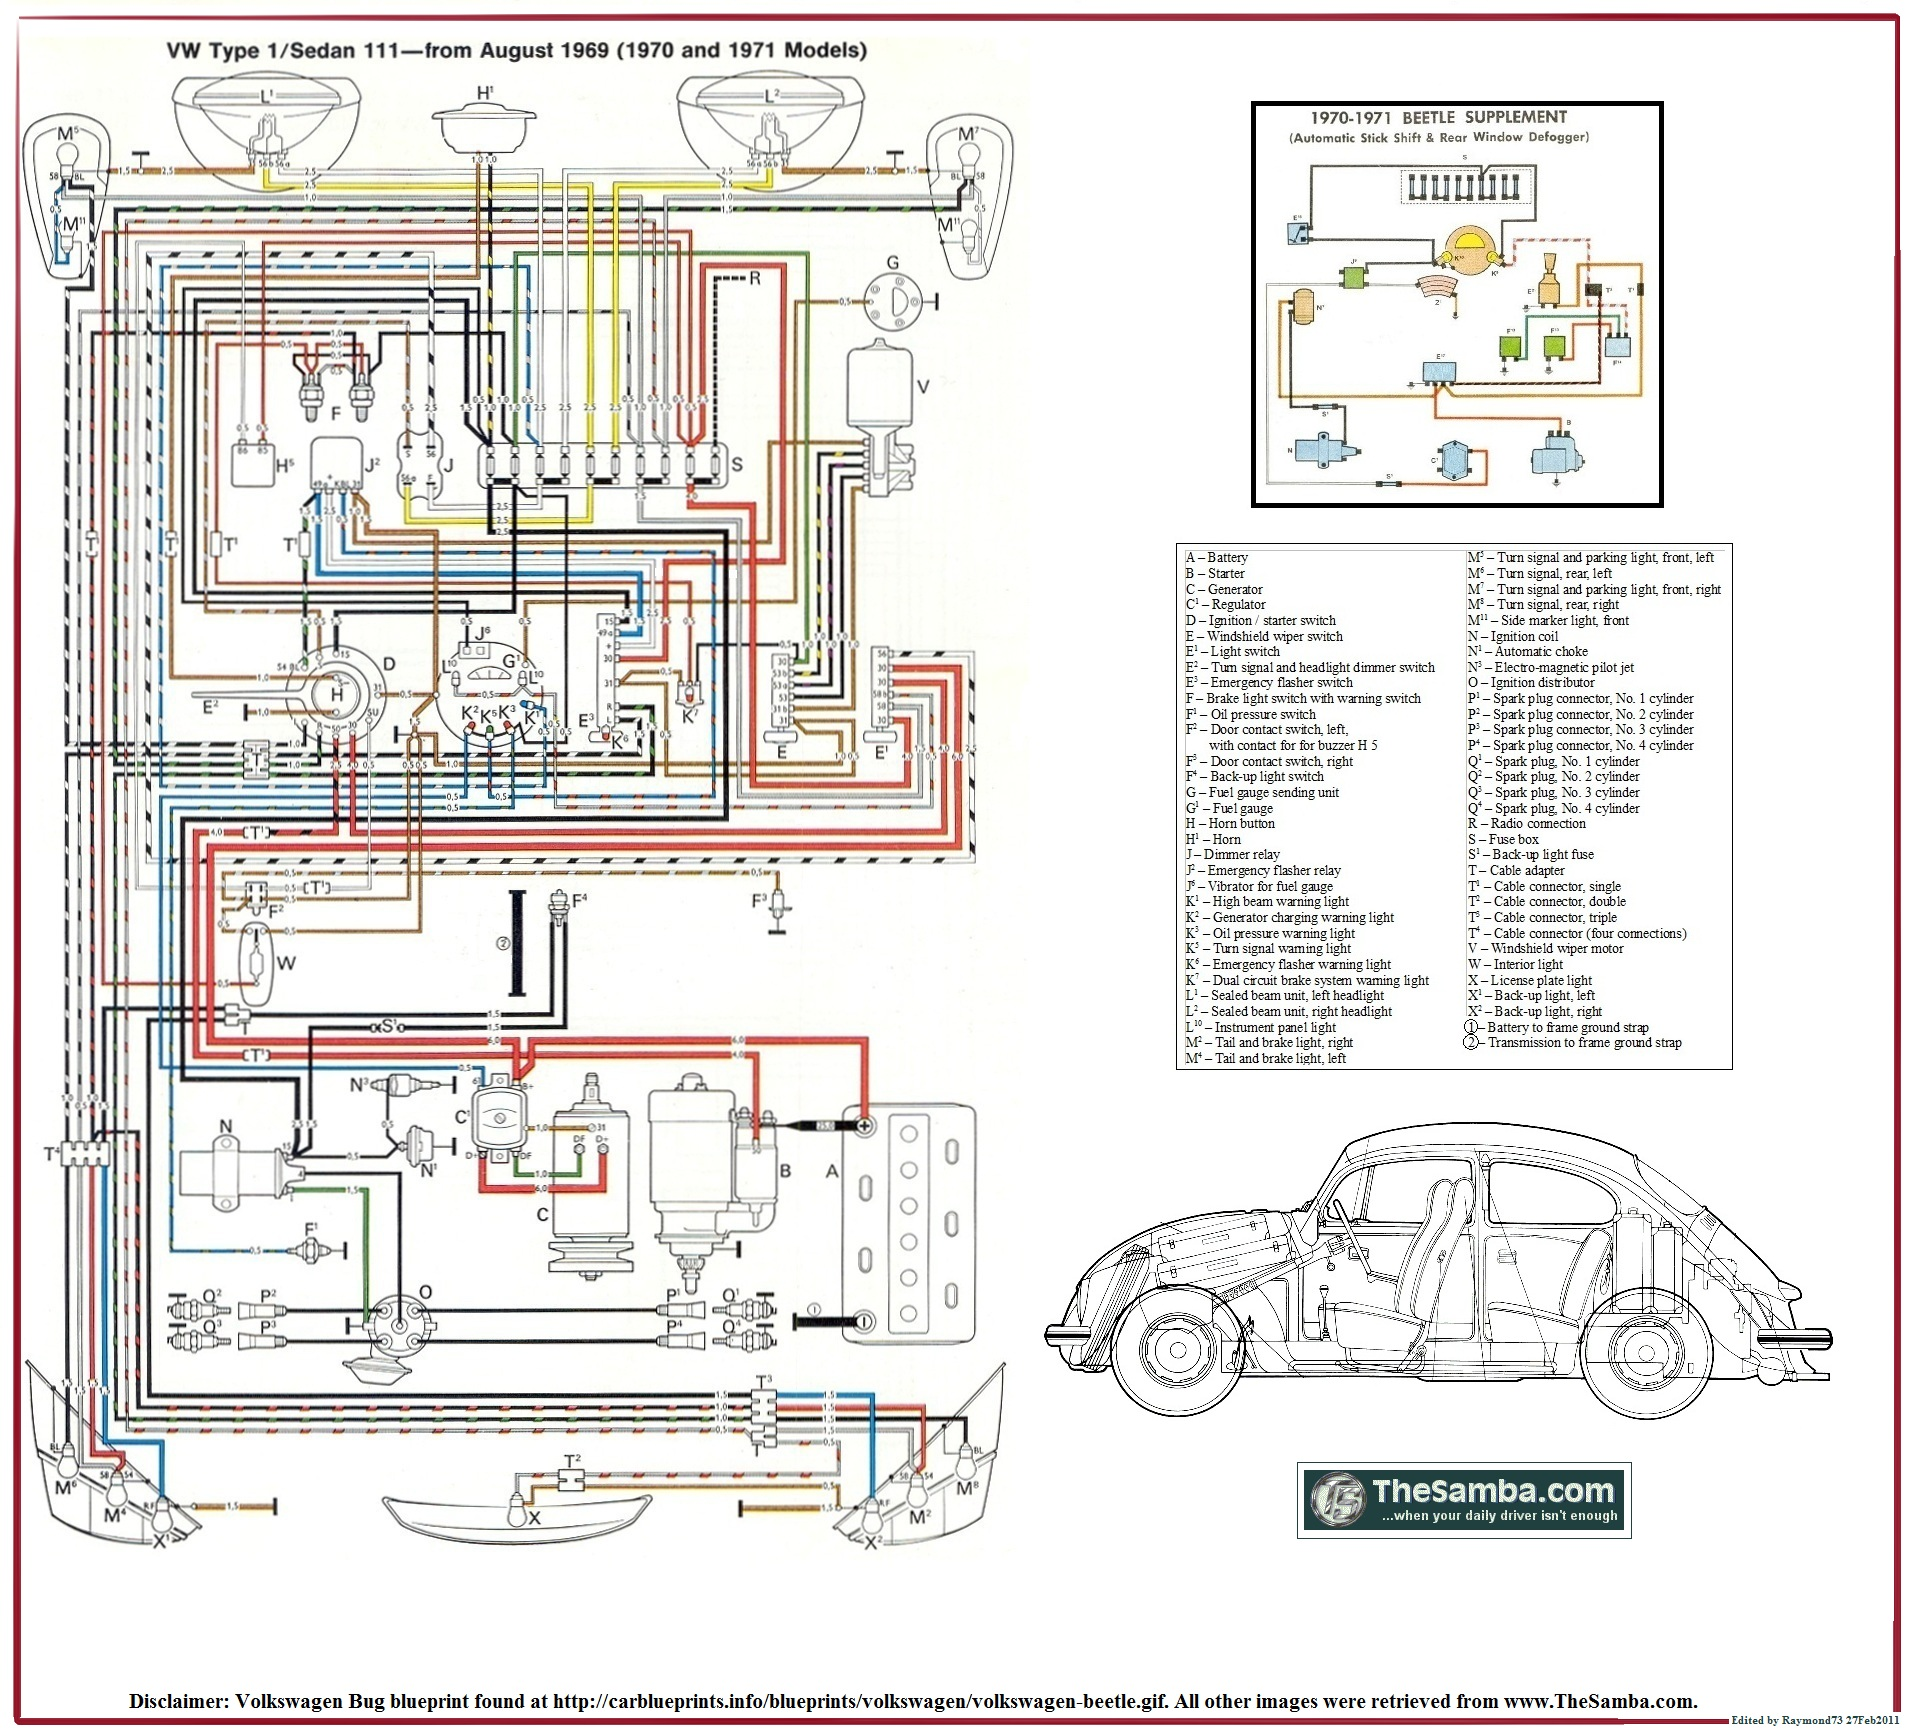 1970_VW_Type_1_Poster vw beetle wiring diagram uk vw wiring diagrams instruction beetle wiring diagram to fix a/c fan at readyjetset.co